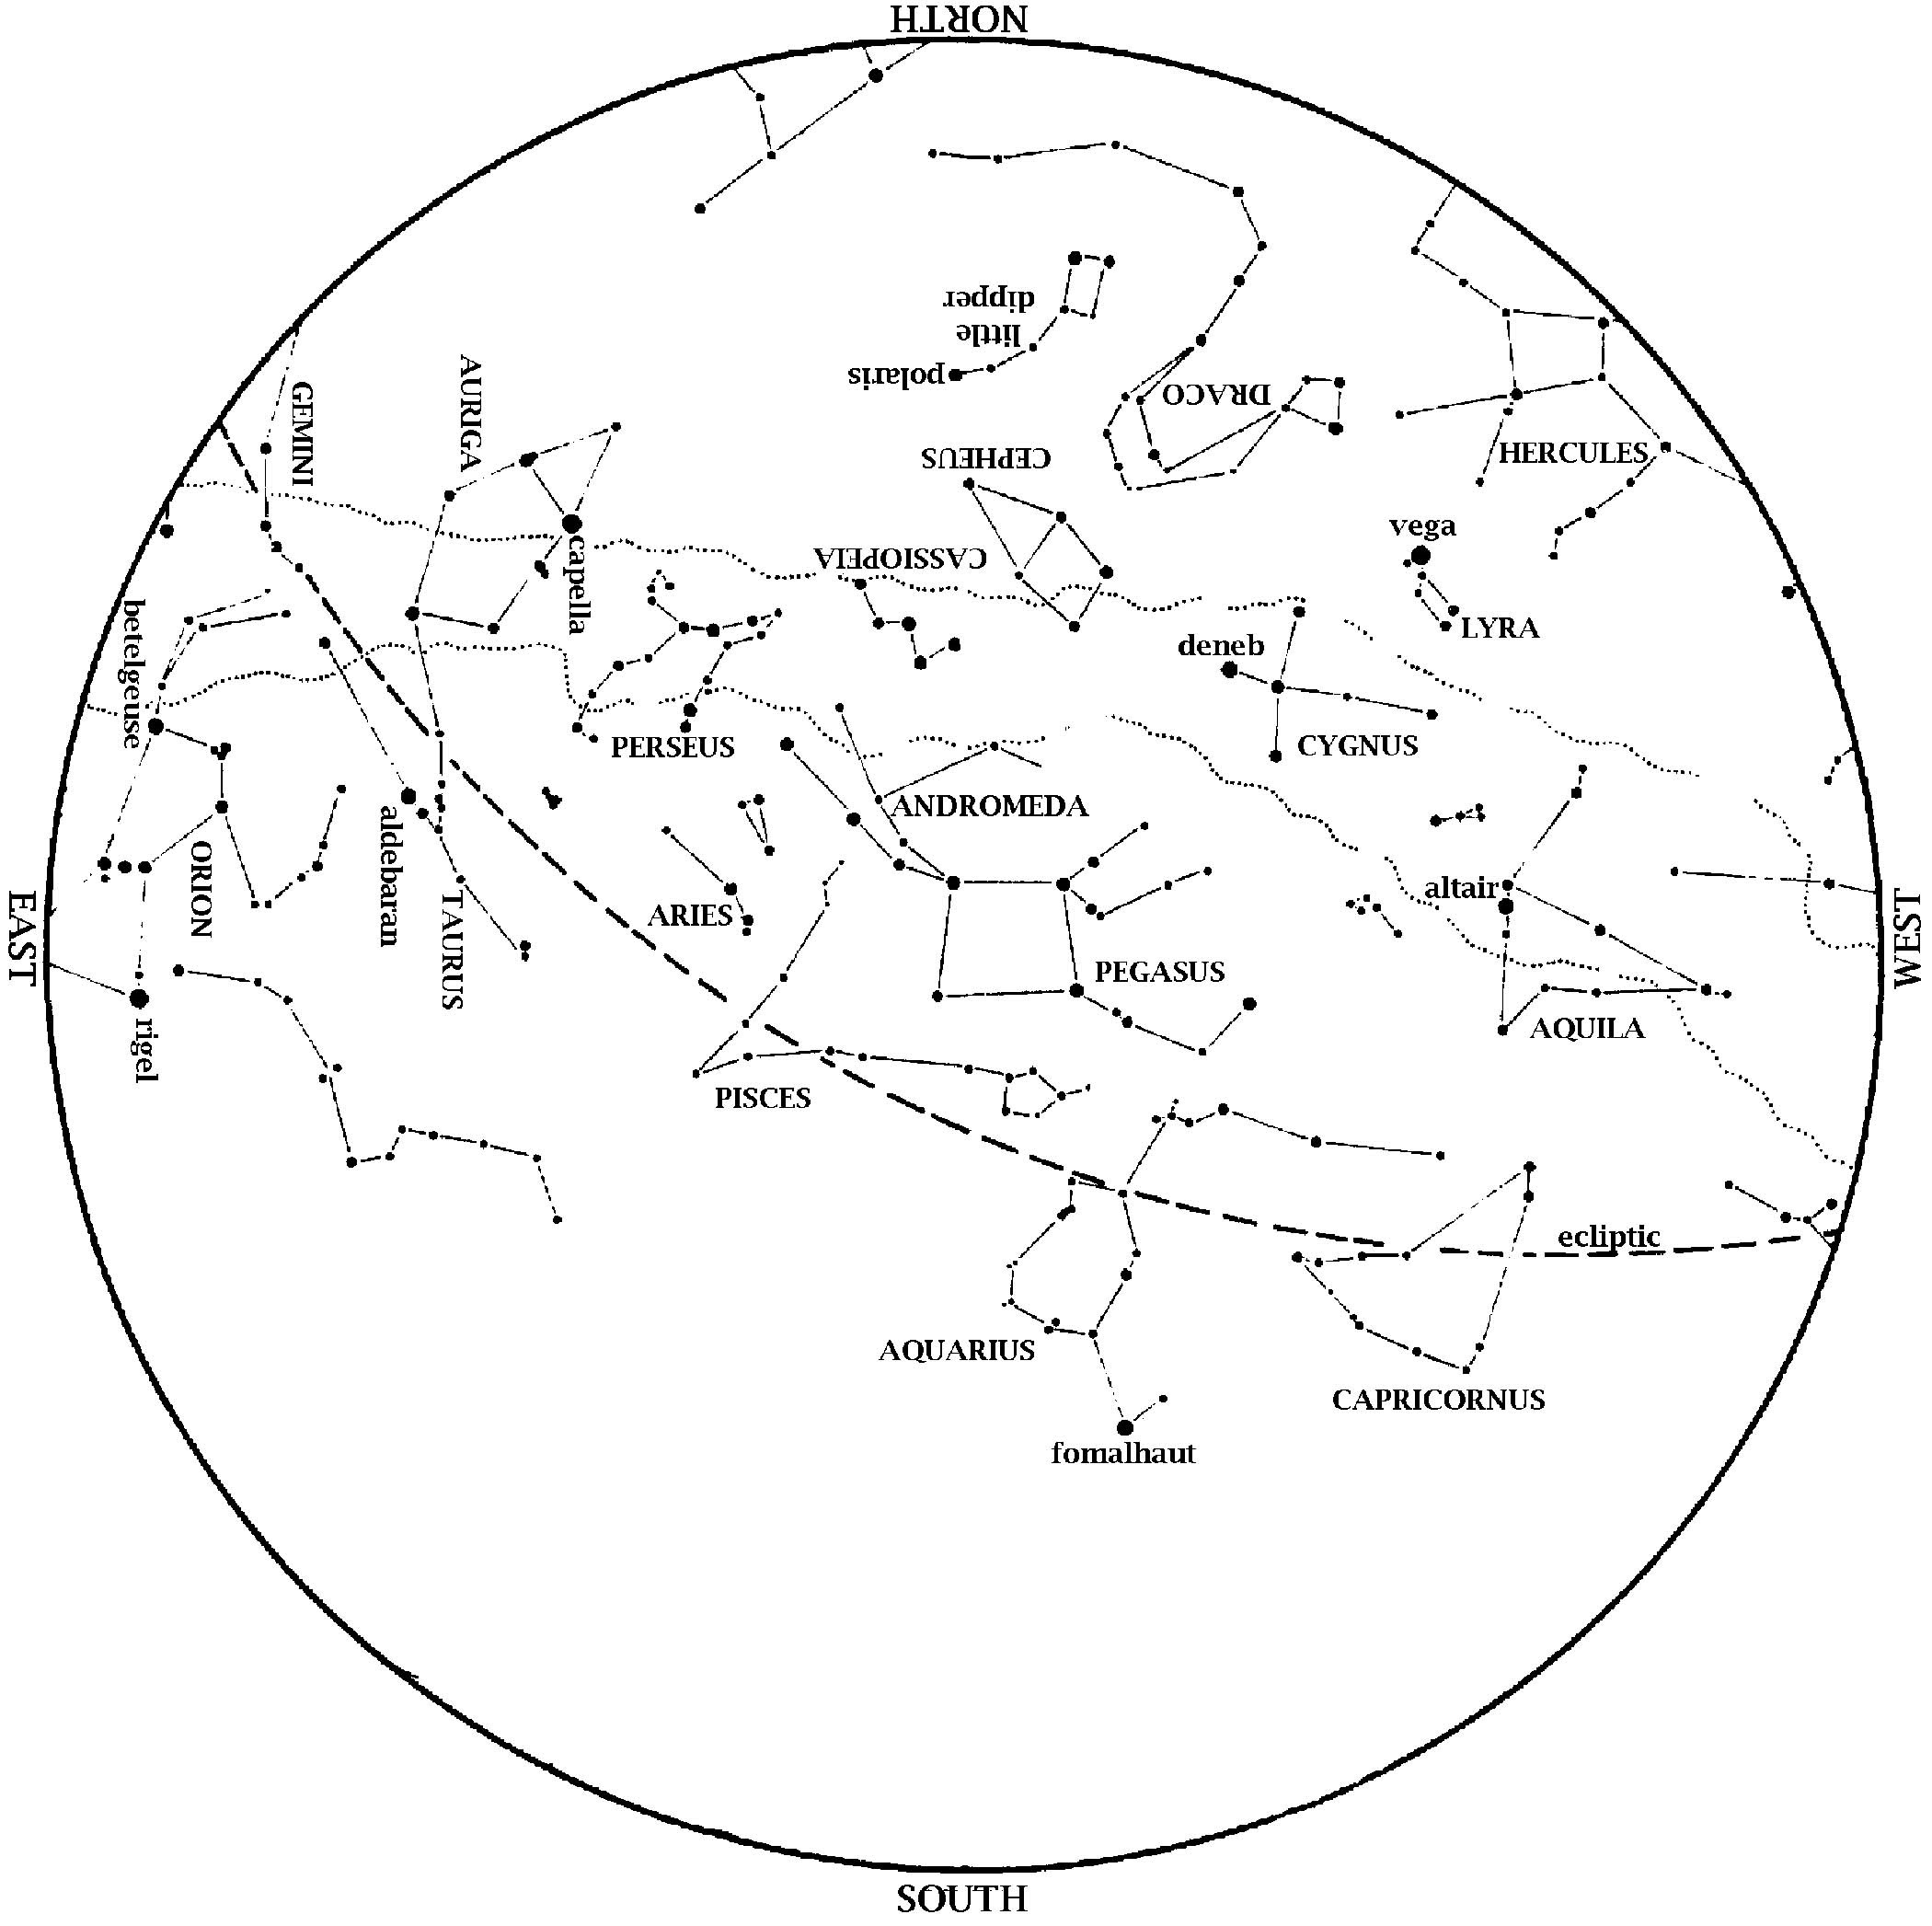 Hmns Guide To Astronomical Events In December